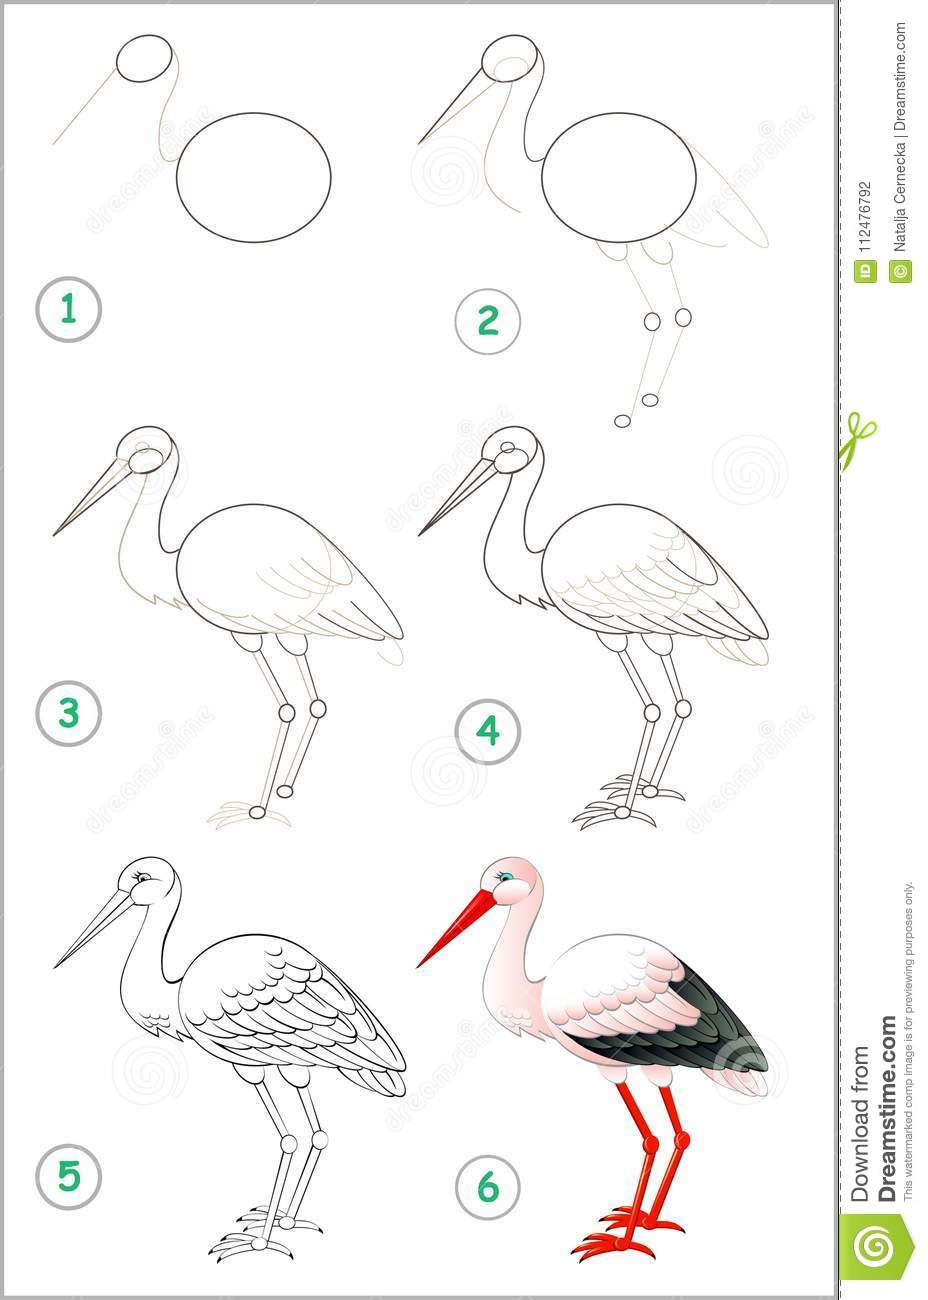 Page Shows How To Learn Step By Step To Draw A Stork